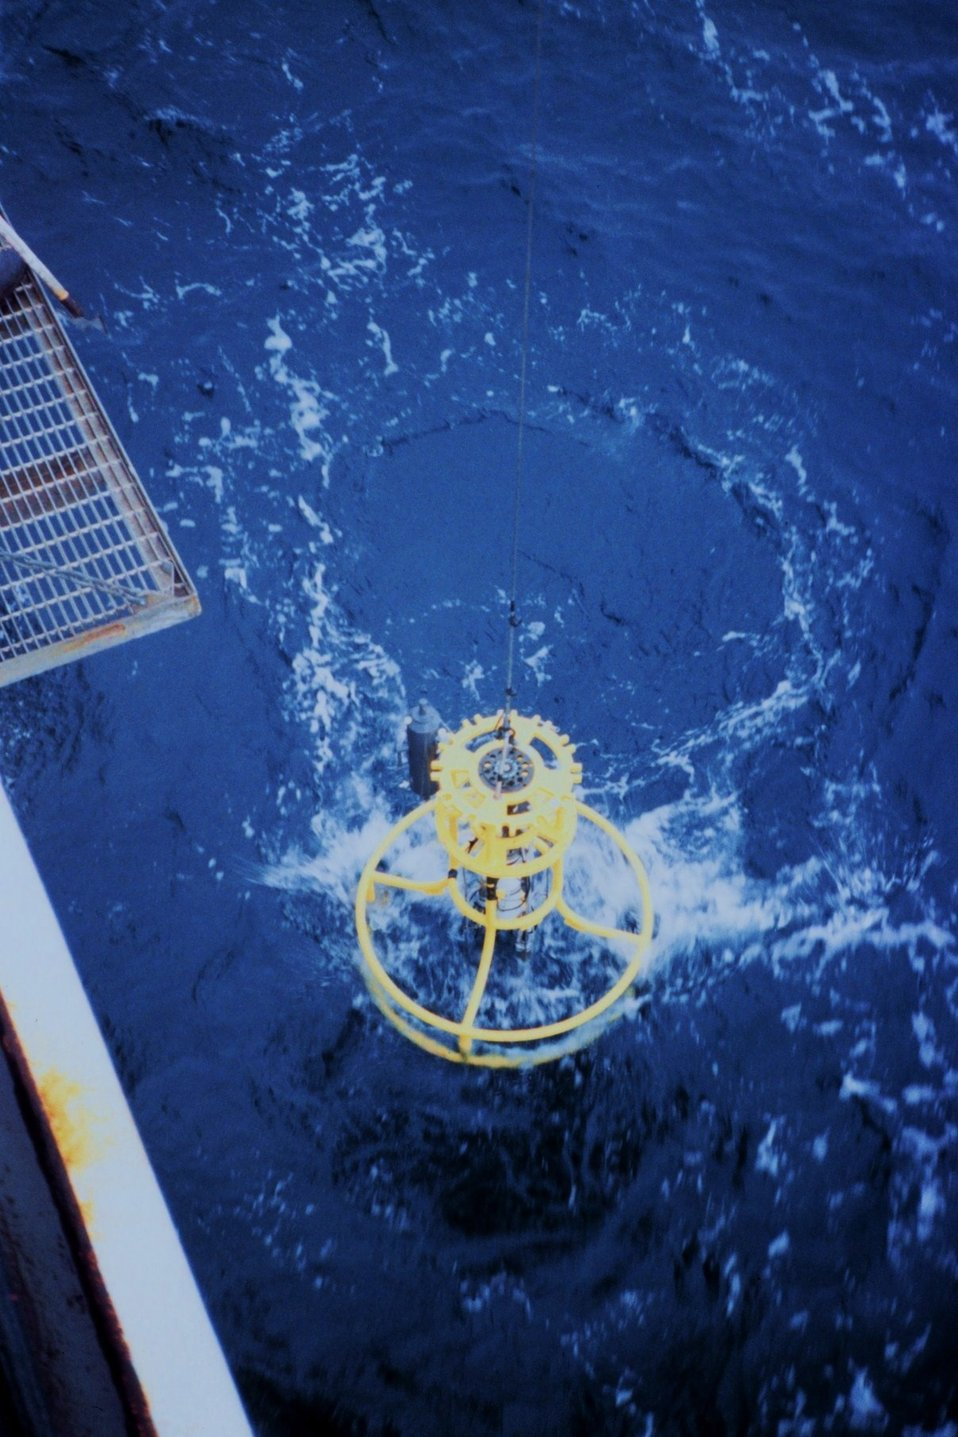 Conductivity-Temperature-Depth measuring instrument being let down to the water surface.